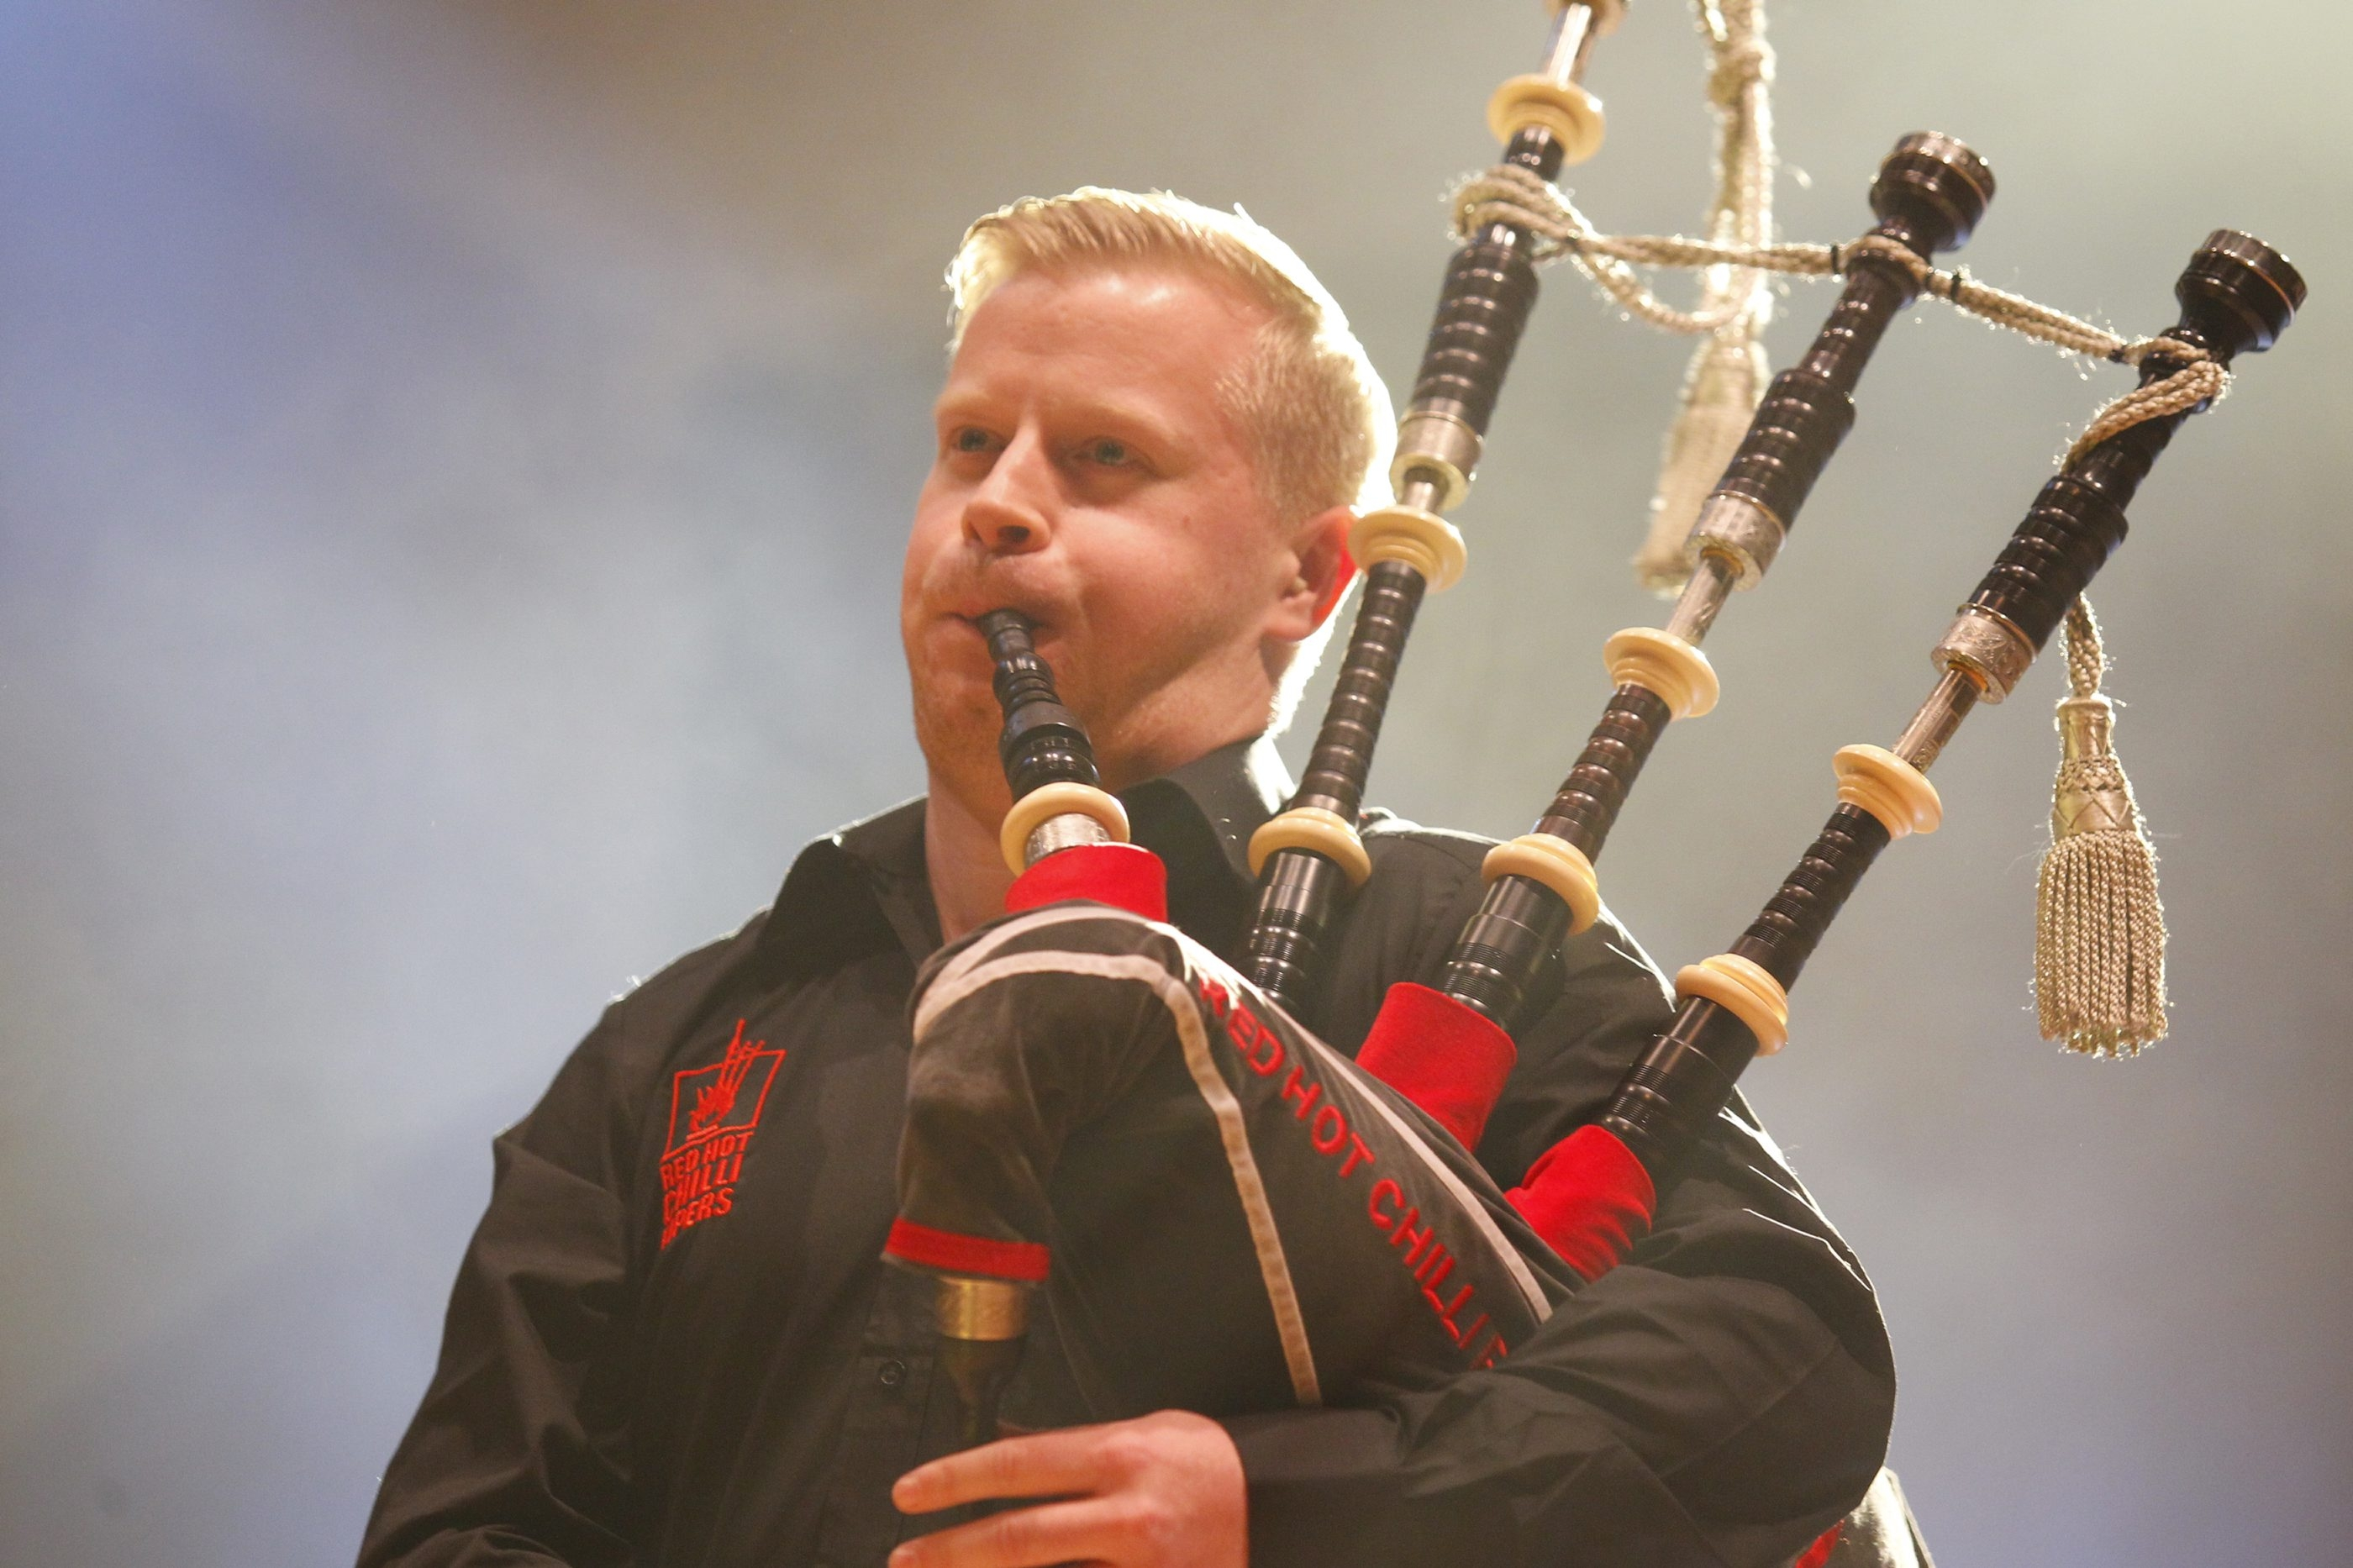 One of the Red Hot Chilli Pipers' bagpipers performs in Kleinhans Music Hall on Saturday.